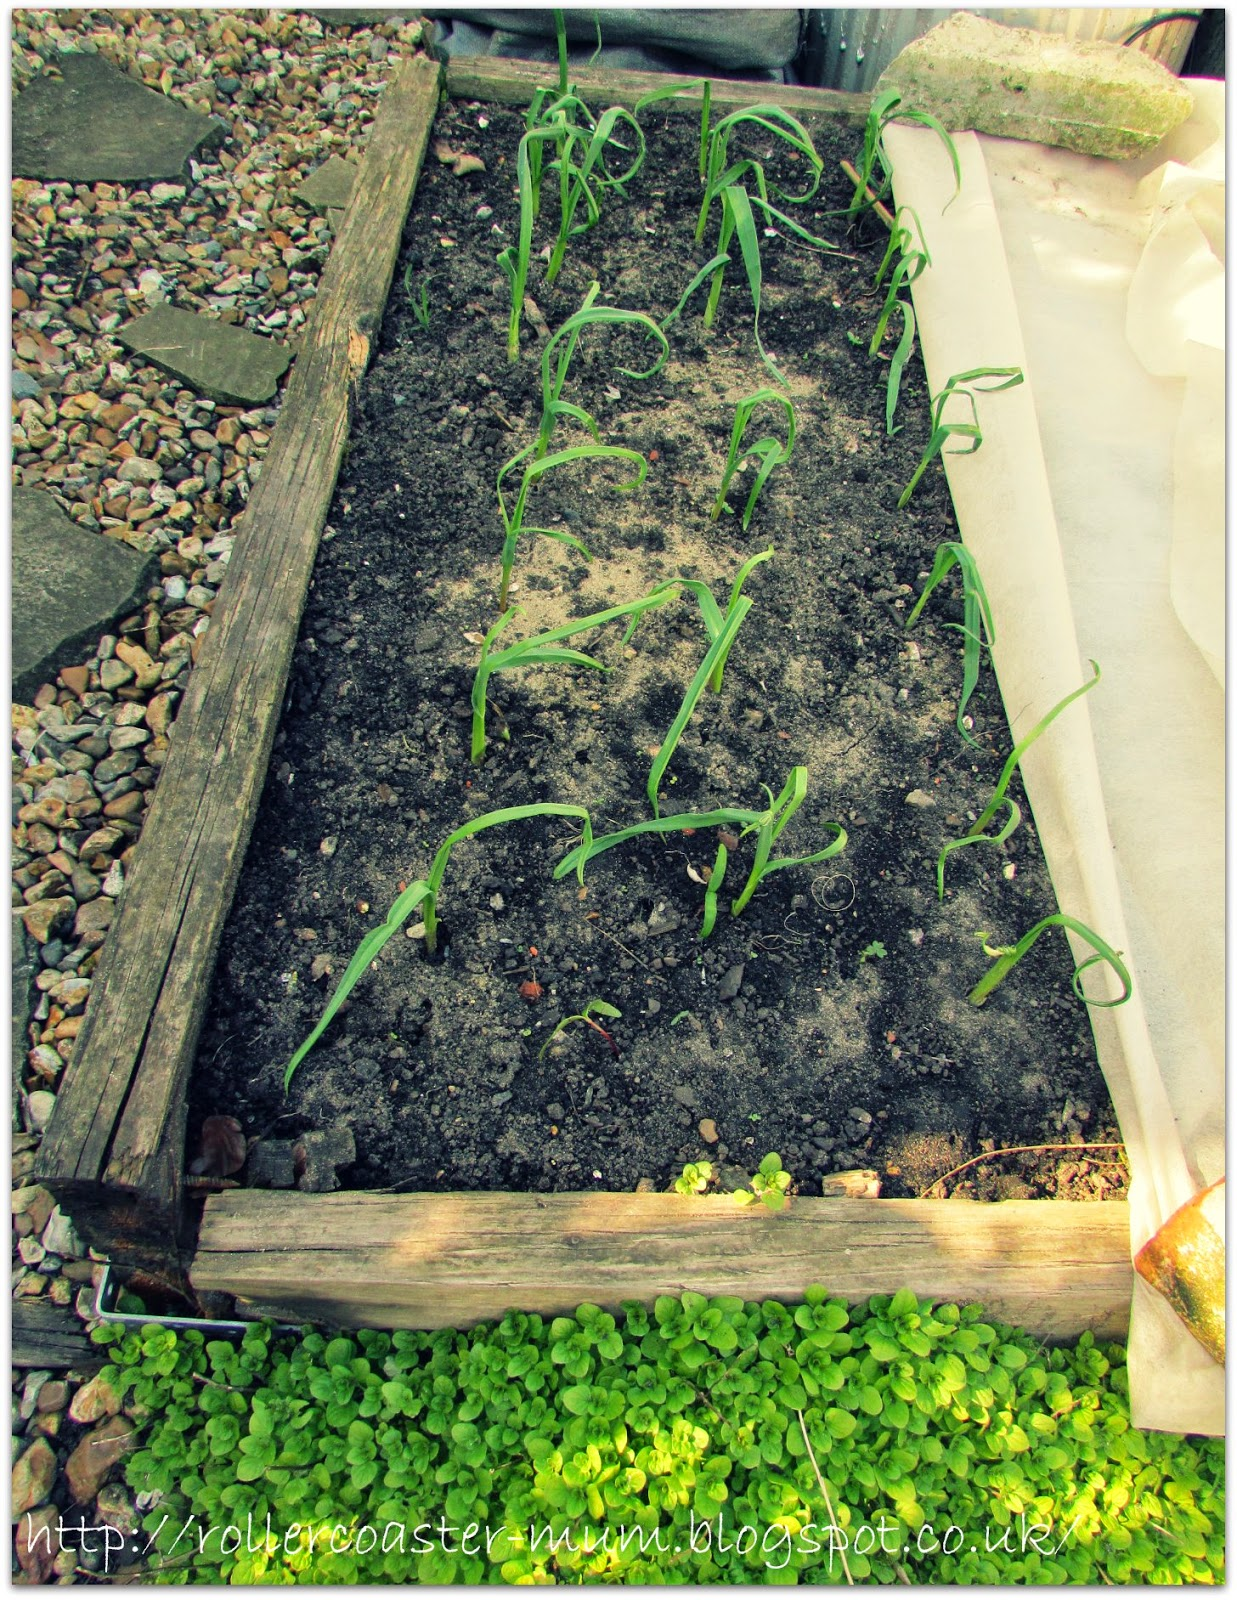 garlic growing in raised bed